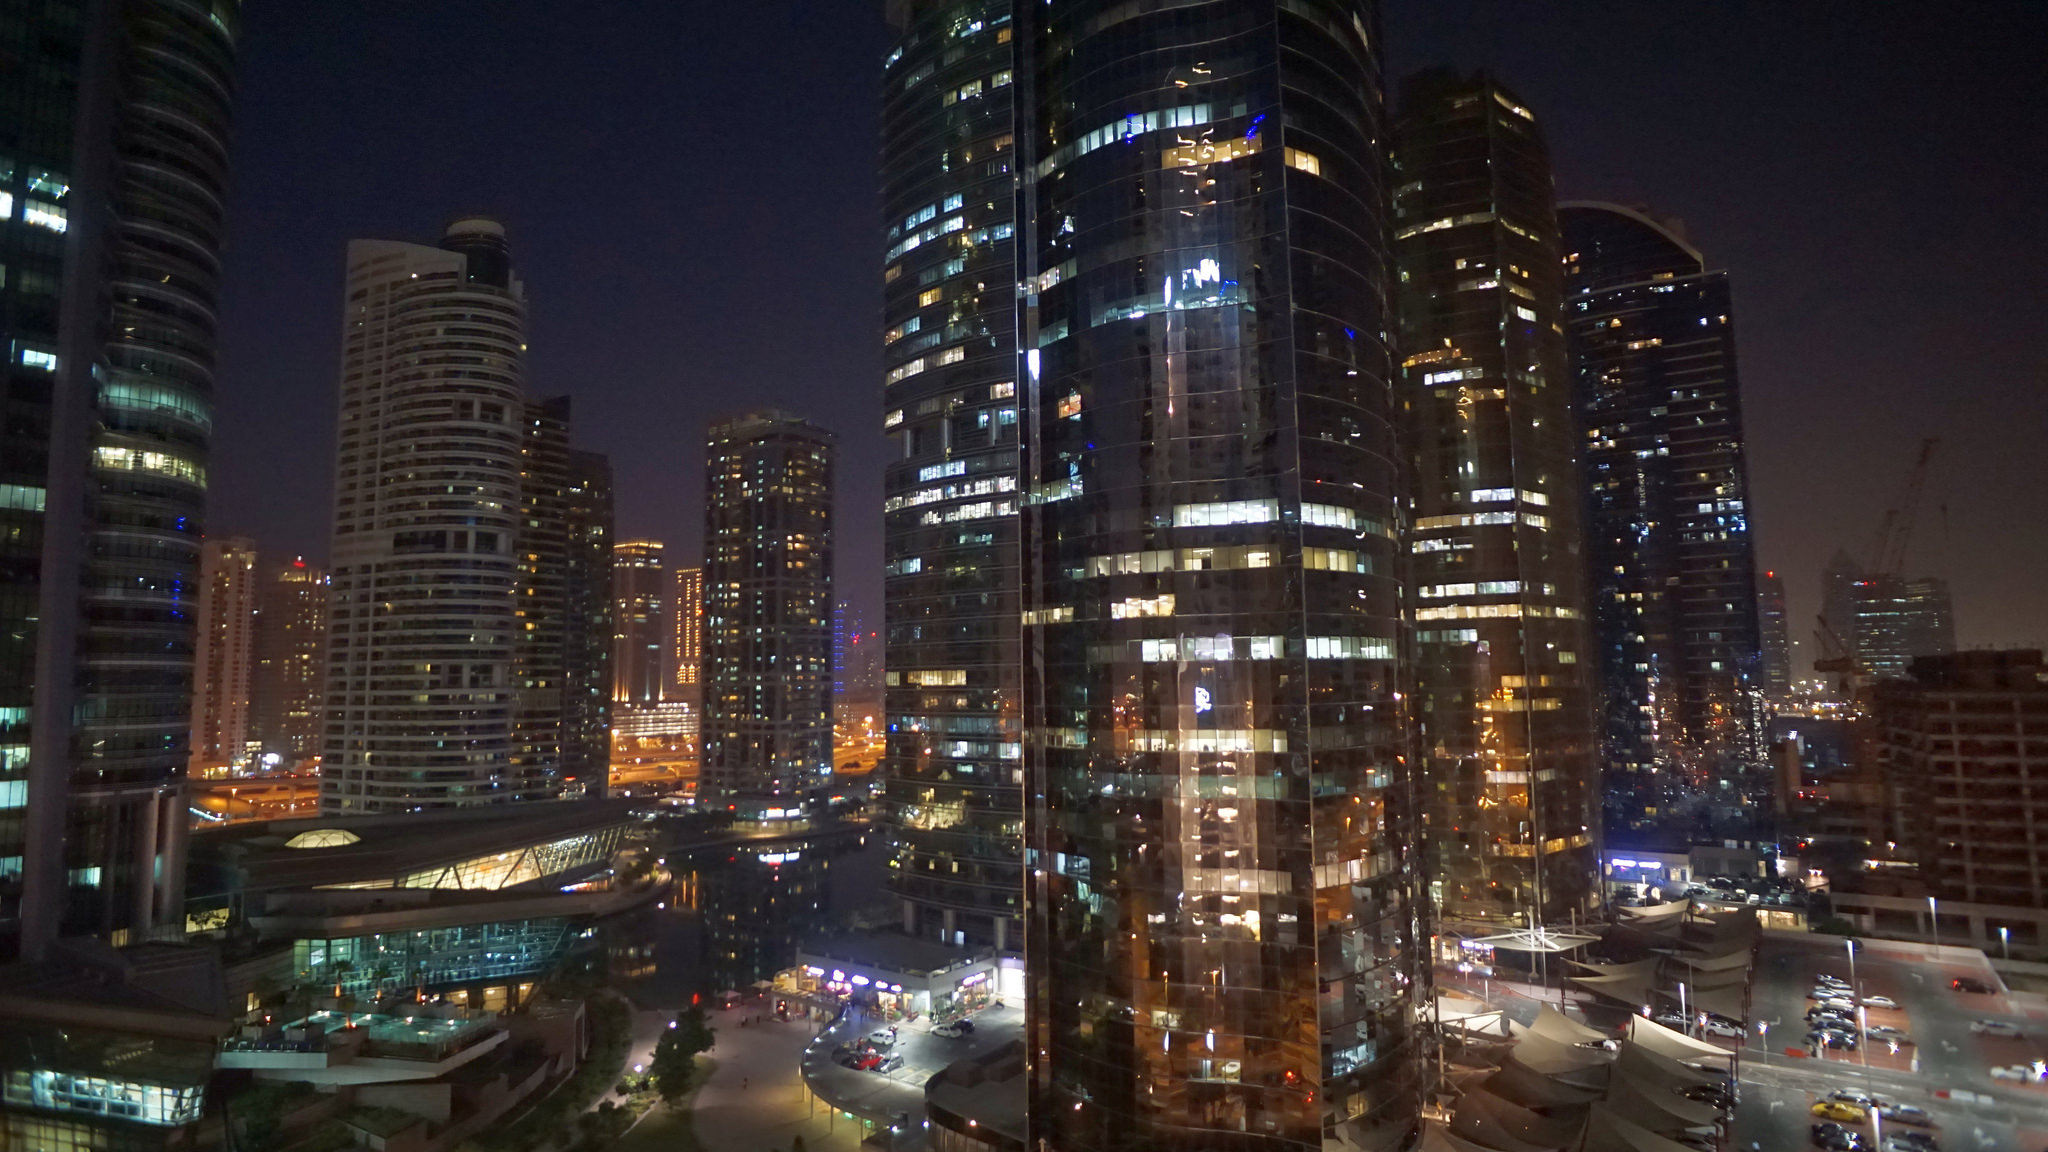 Struggling to Make Friends in Dubai? Try These 7 Easy Tips